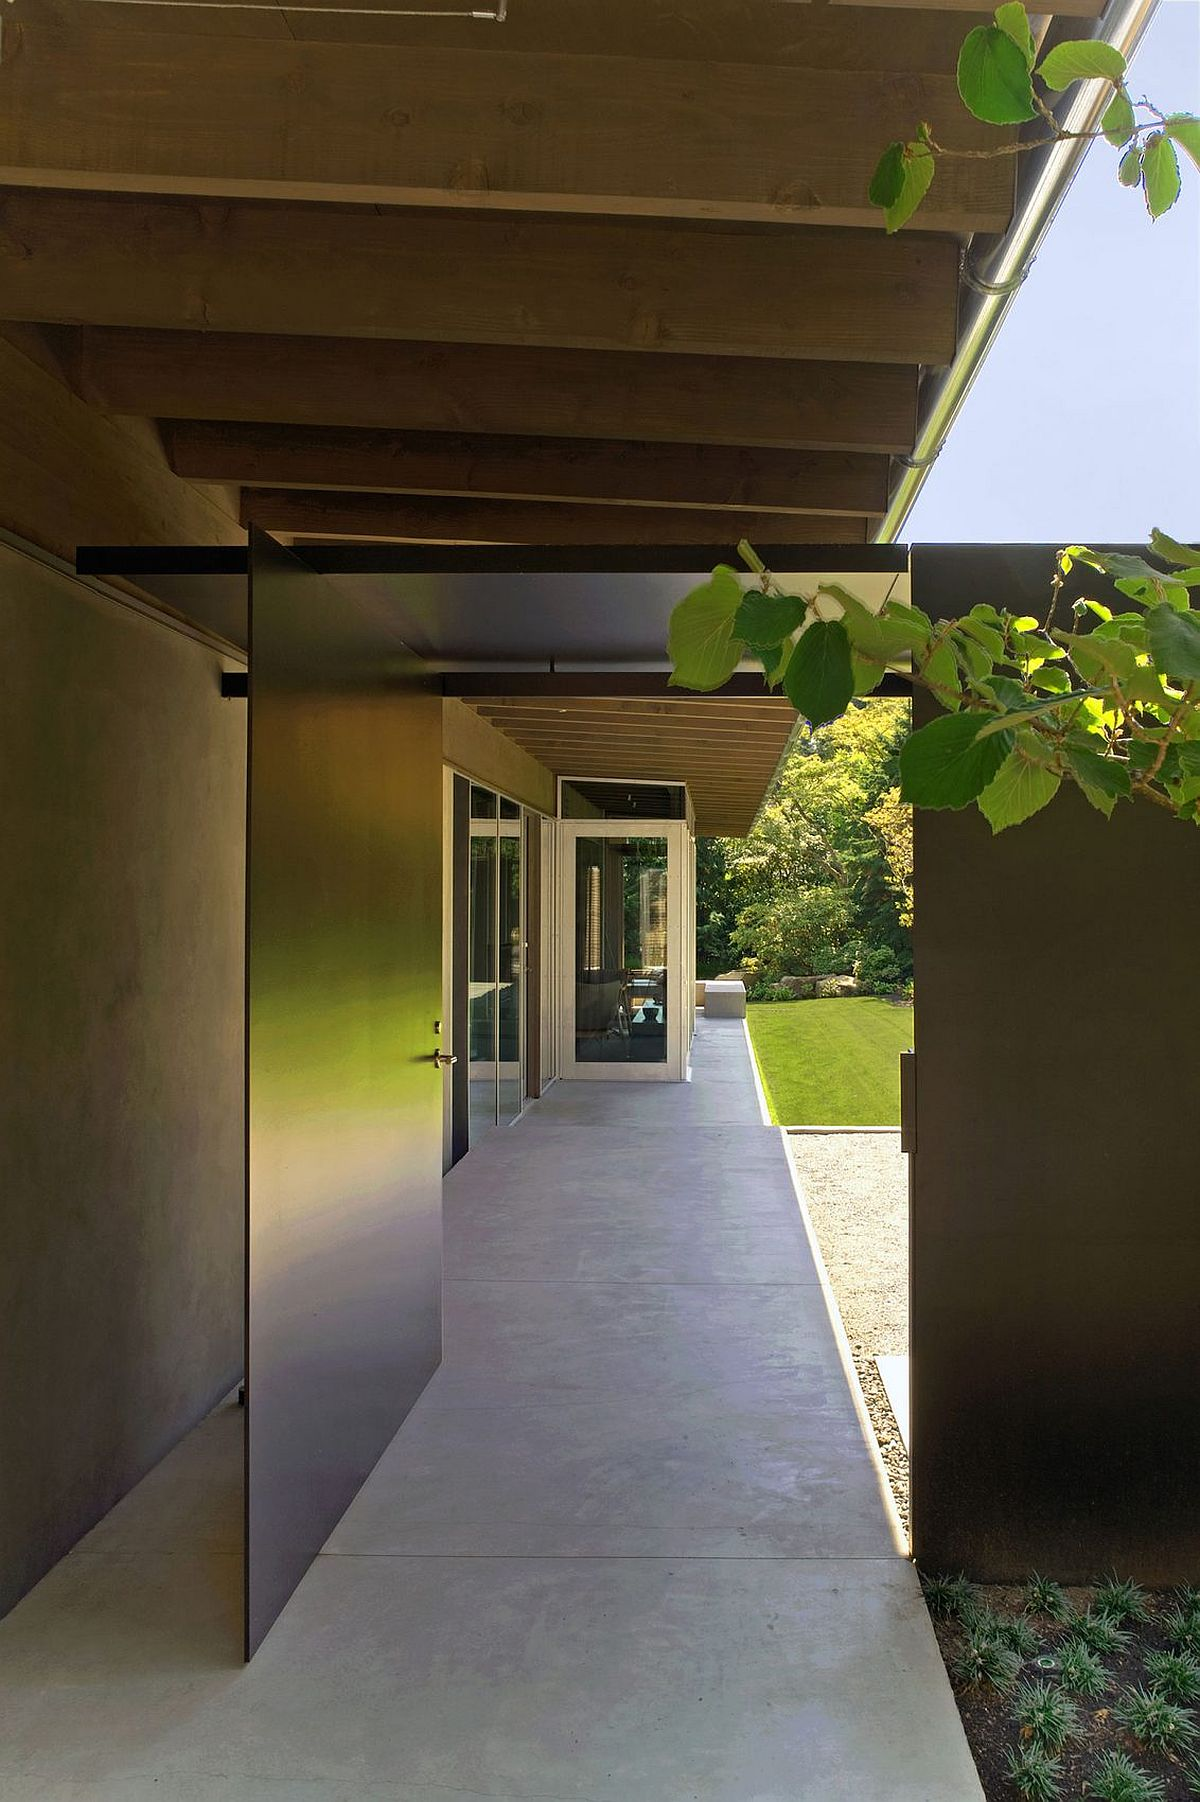 Sheltered terraces and outdoor spaces connect the interior with the lush green landscape around it